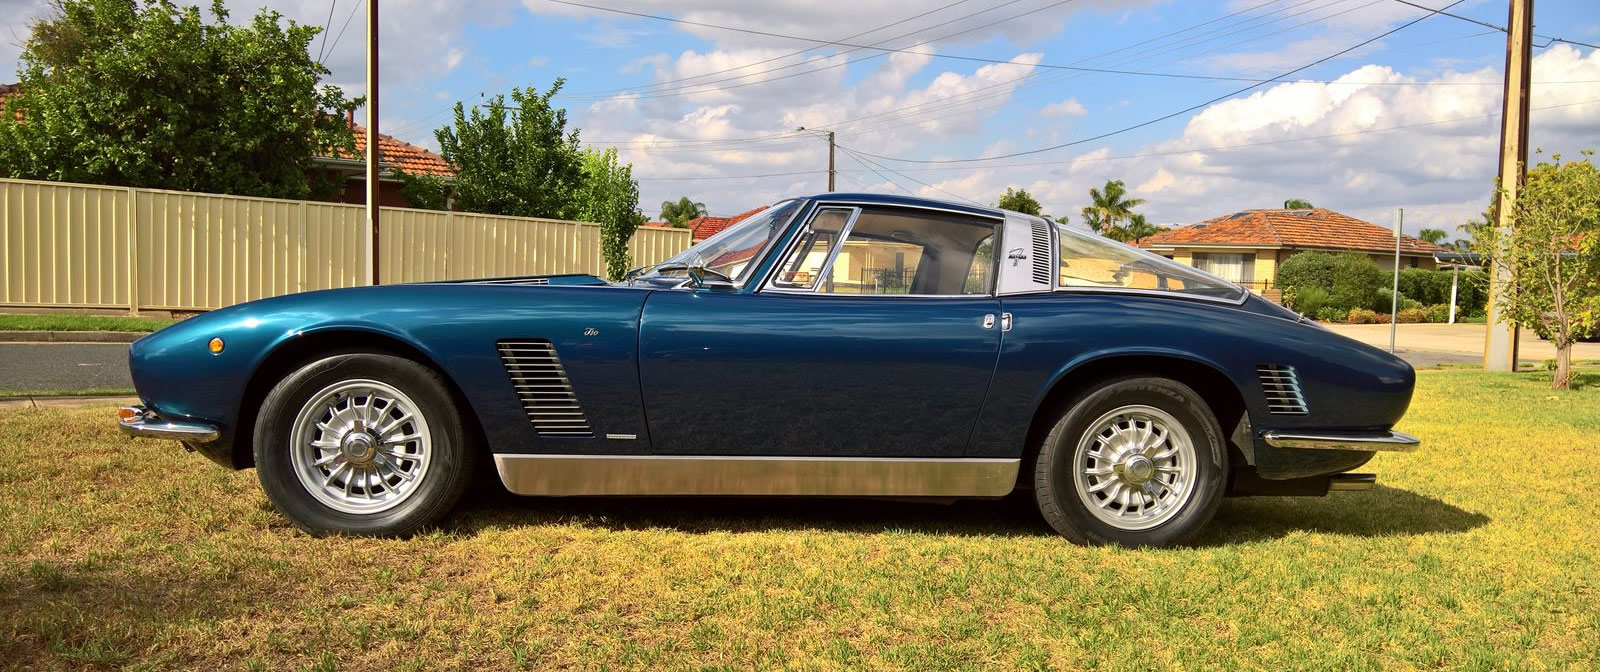 1970 Iso Grifo: Italian Supercar with American Muscle